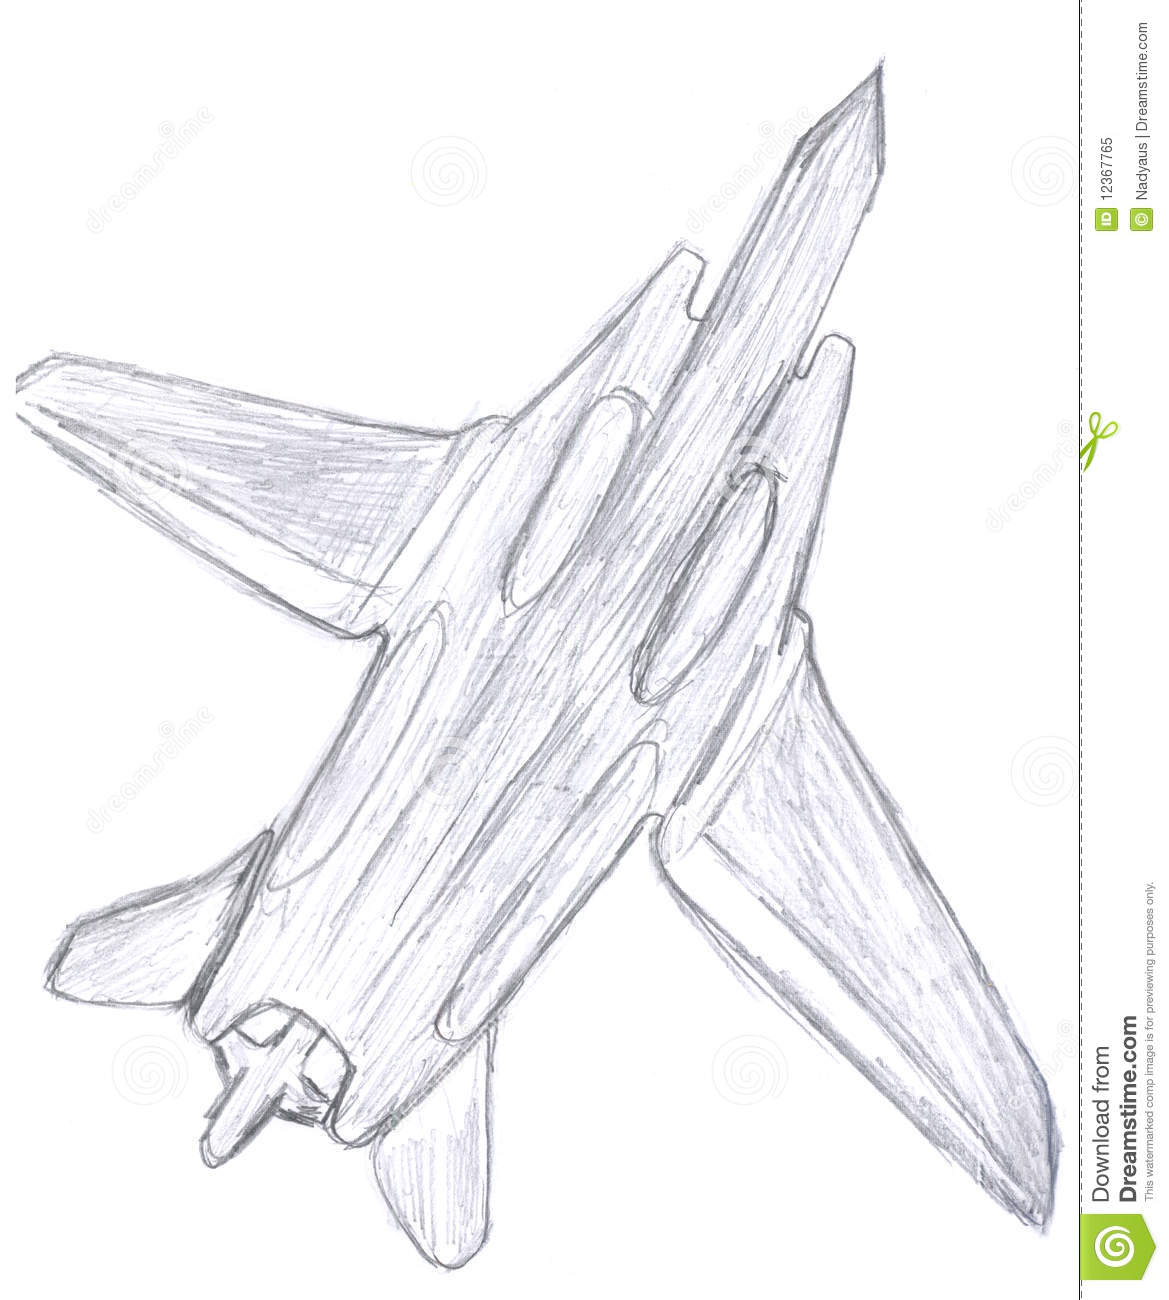 Military Fighter Aircraft Sketch Royalty Free Stock Photo